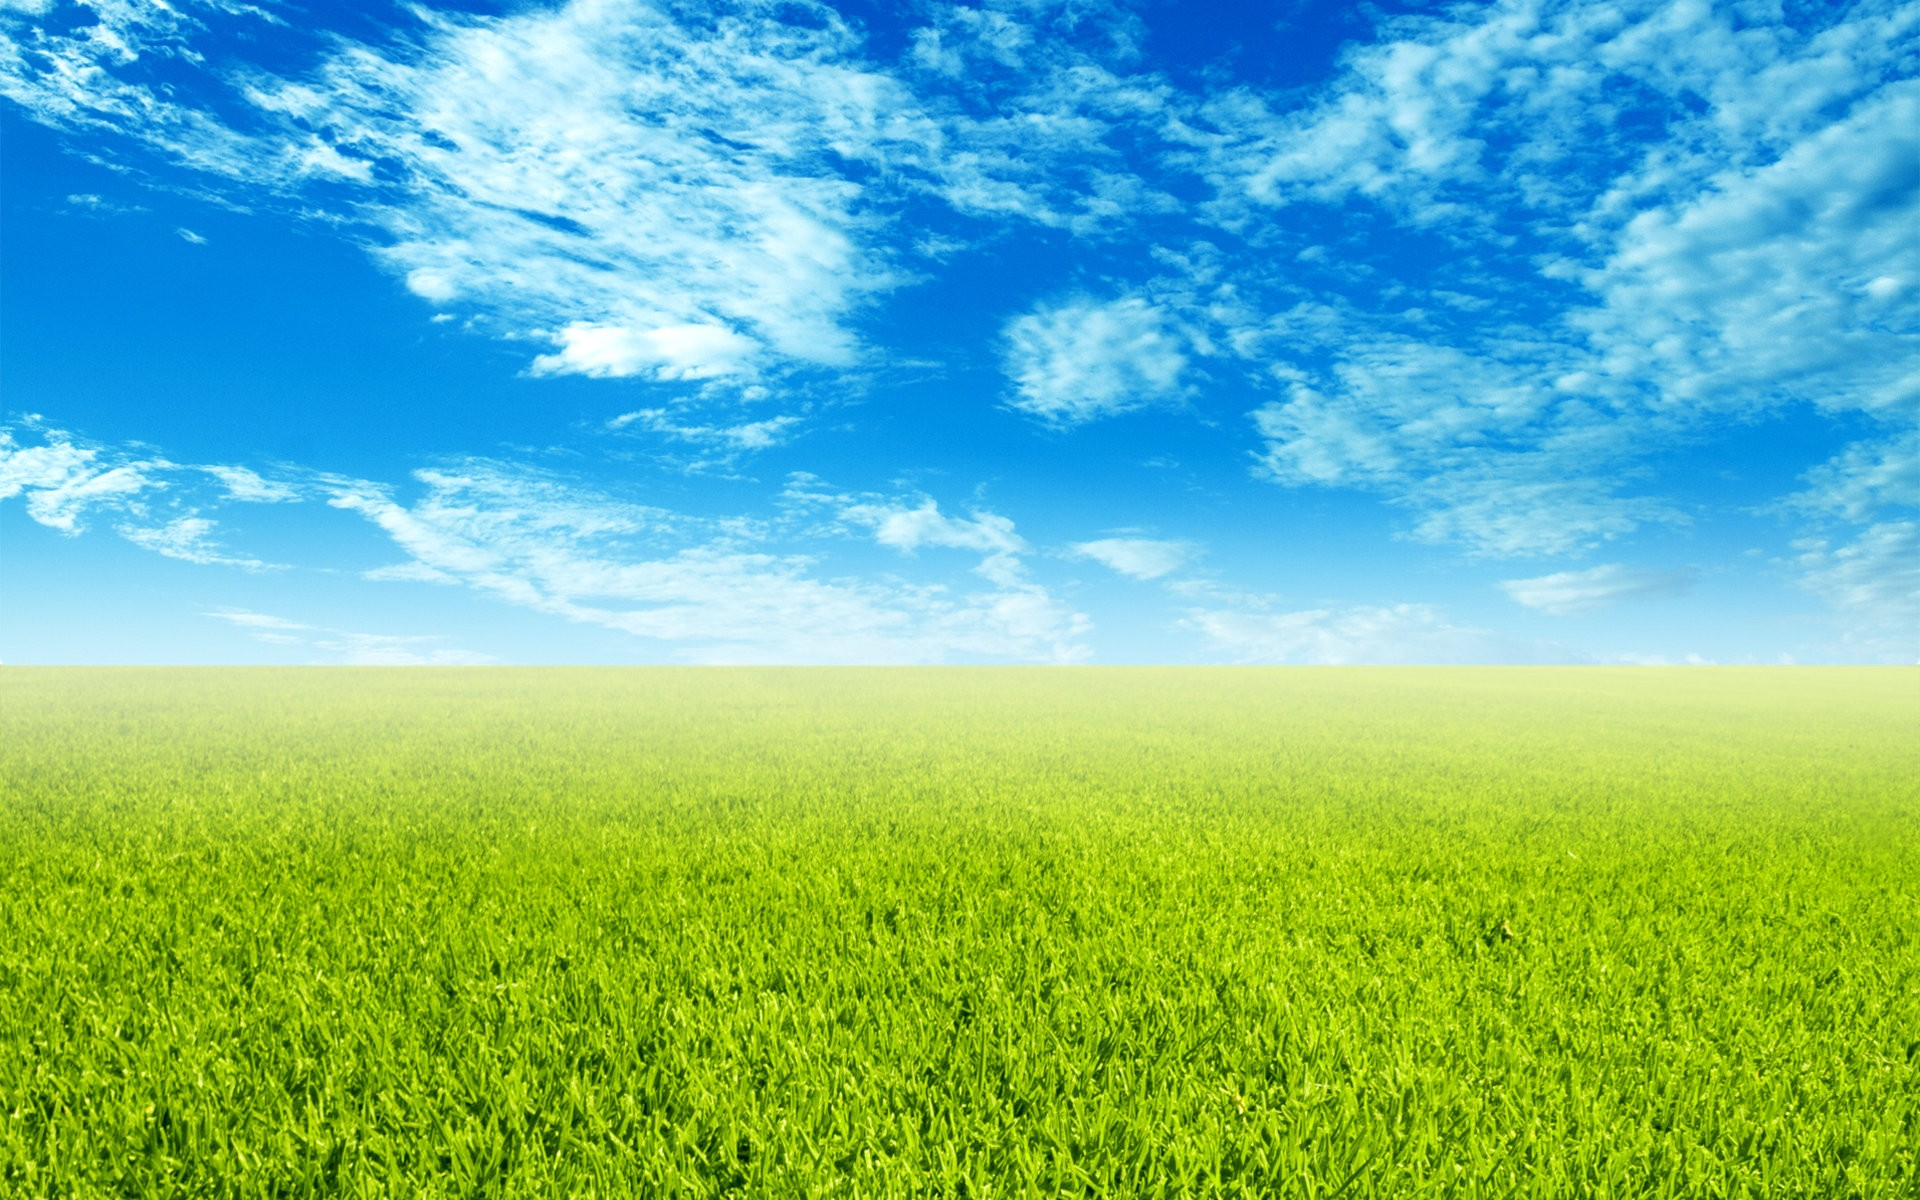 Sky and Grass Wallpaper | Wide Screen Wallpaper 1080p,2K,4K